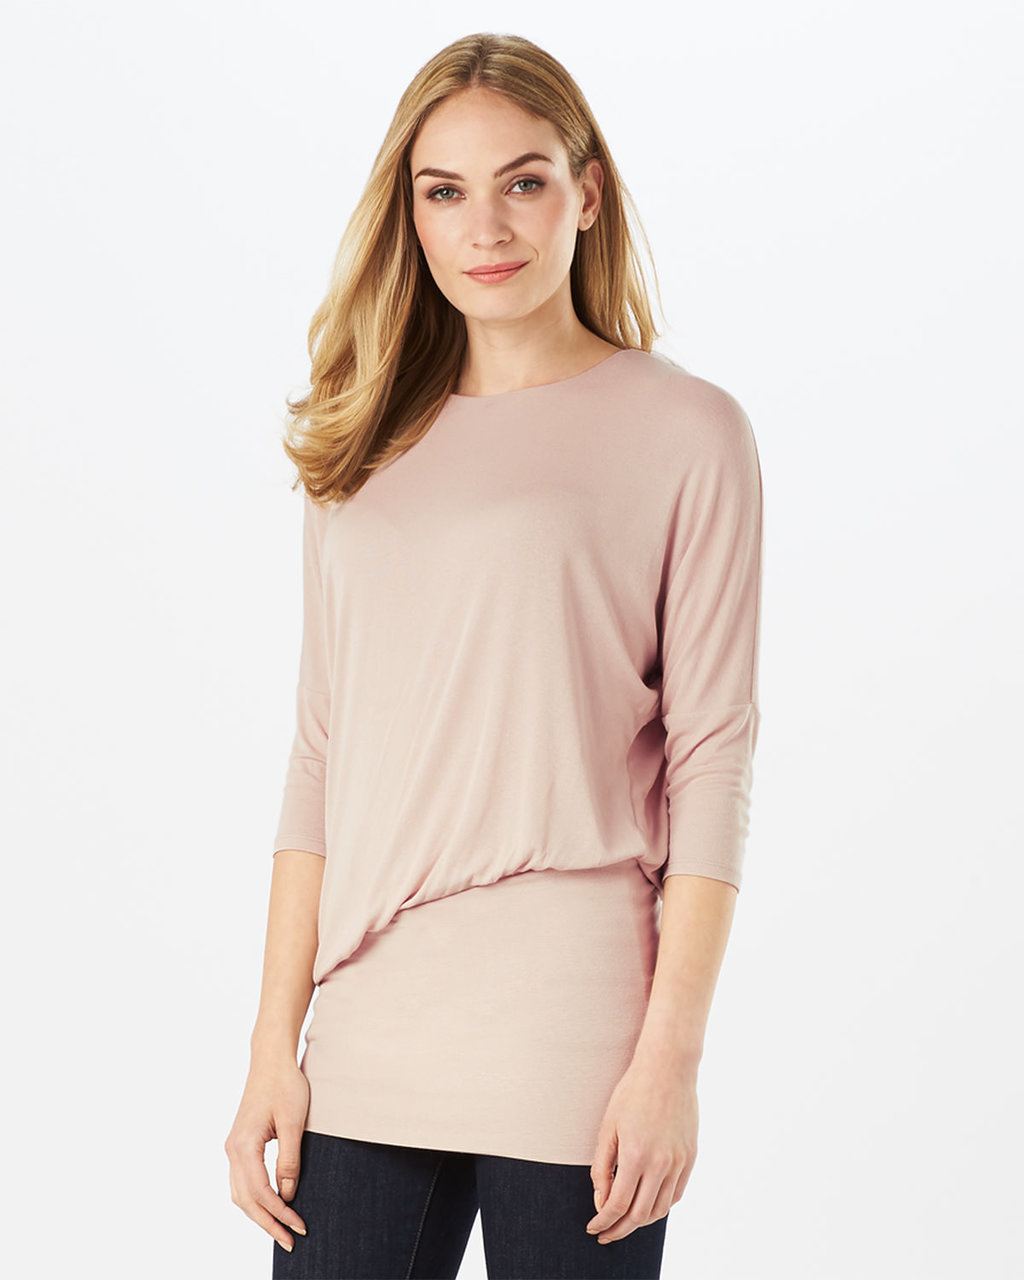 Adeline Asymmetric Blouson Top - pattern: plain; bust detail: ruching/gathering/draping/layers/pintuck pleats at bust; predominant colour: blush; occasions: casual; length: standard; style: top; fibres: viscose/rayon - stretch; fit: body skimming; neckline: crew; sleeve length: 3/4 length; sleeve style: standard; pattern type: fabric; texture group: jersey - stretchy/drapey; wardrobe: basic; season: a/w 2016